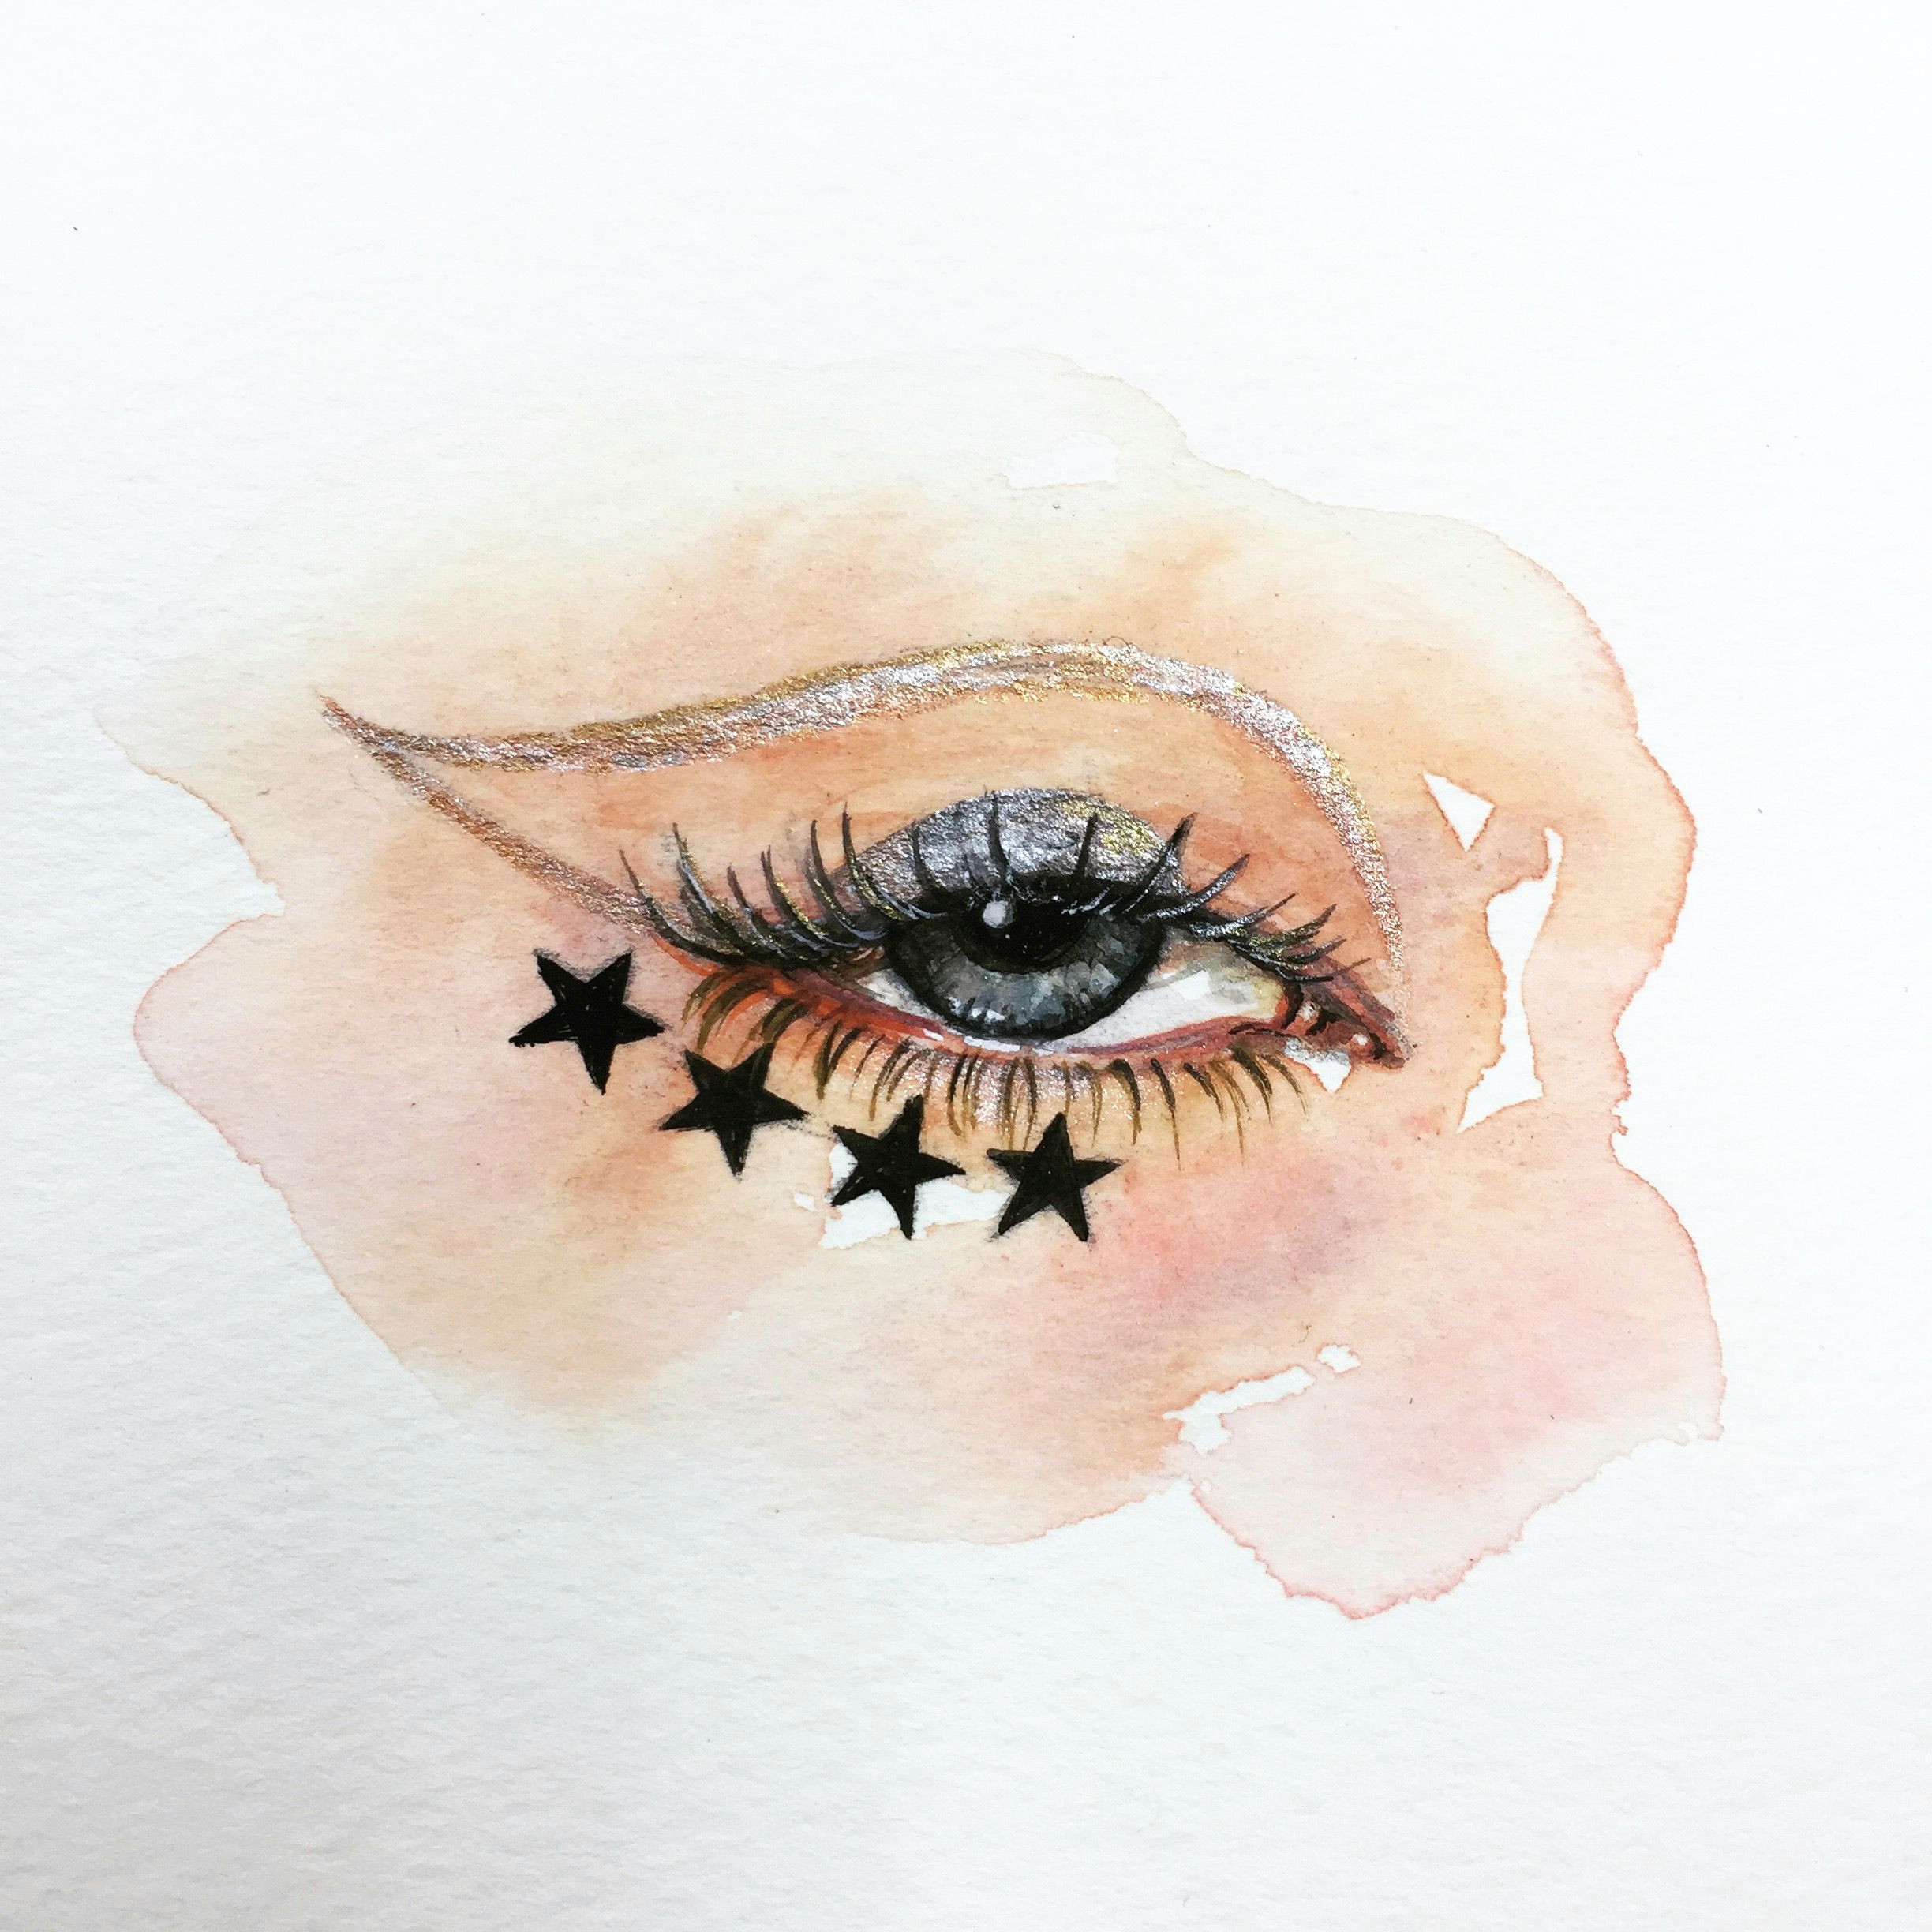 the 100 day project 41 100 100 days of eye drawing by oliviaumeiwa oliviaumeiwa art painting watercolor artist eye stars gold makeup